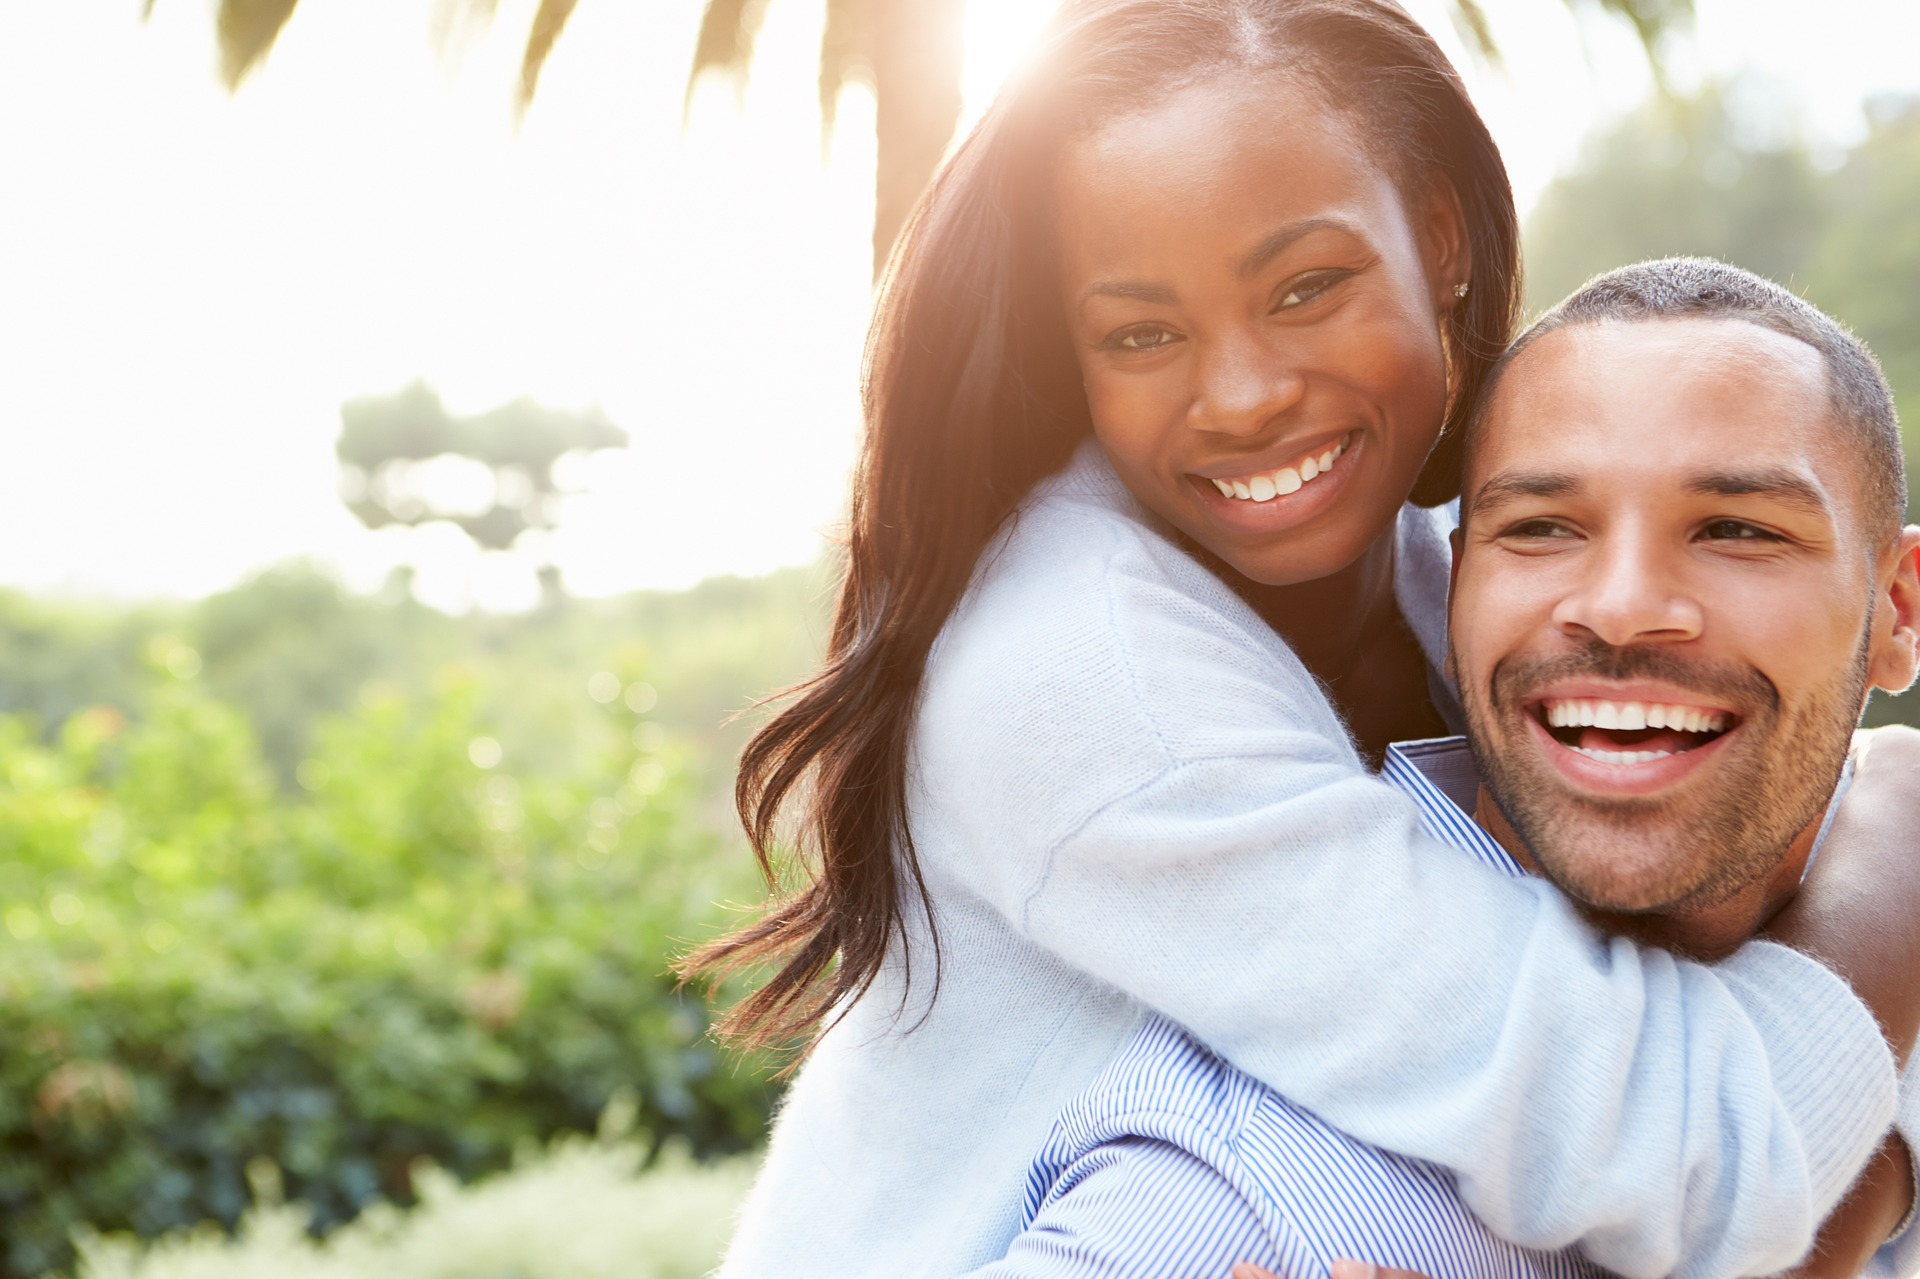 Does your relationship feel as good as it looks?